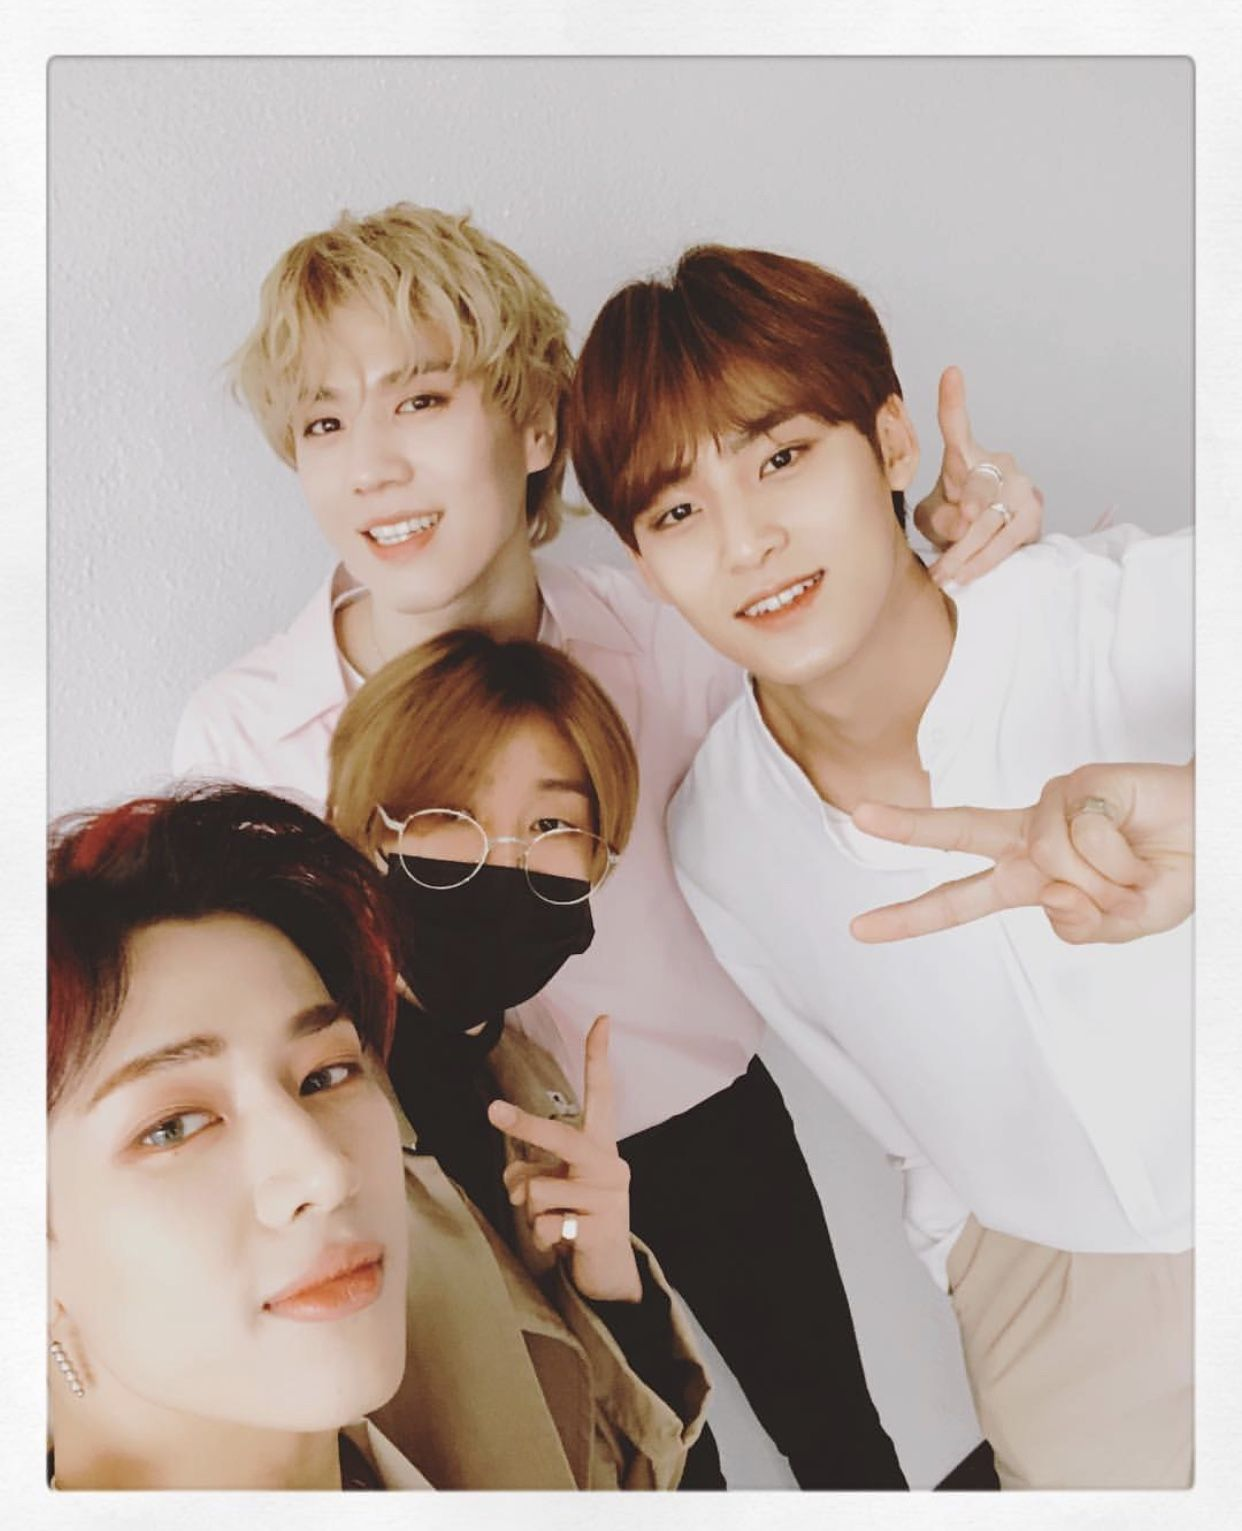 97' Line   or some of them🤧 bambam, Yugyeom, Minghao and